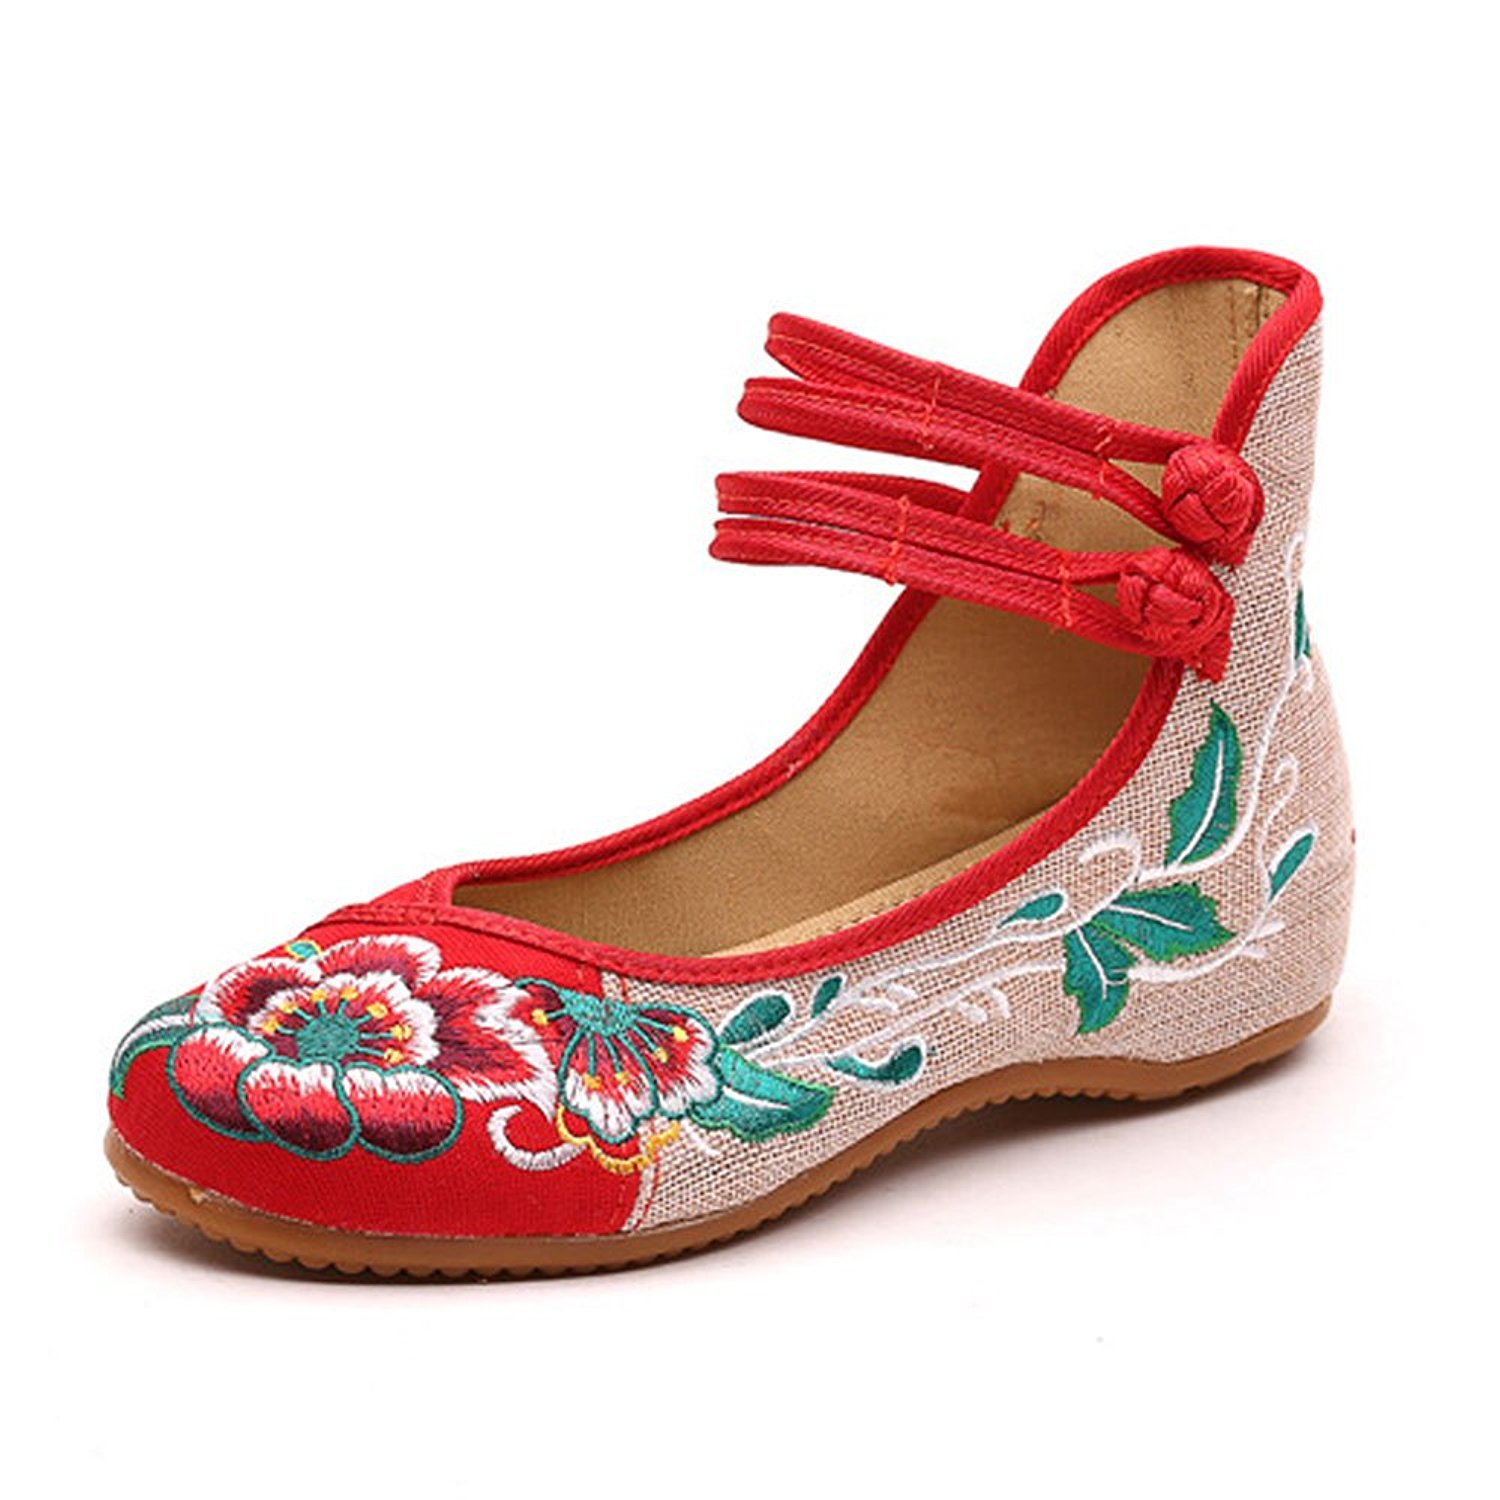 Womens Folk Style Canvas Peony Embroidered Cloth Mary Jane Shoes Breathable Casual Walking Ethnic Dancing Shoes Red,8 B(M) US